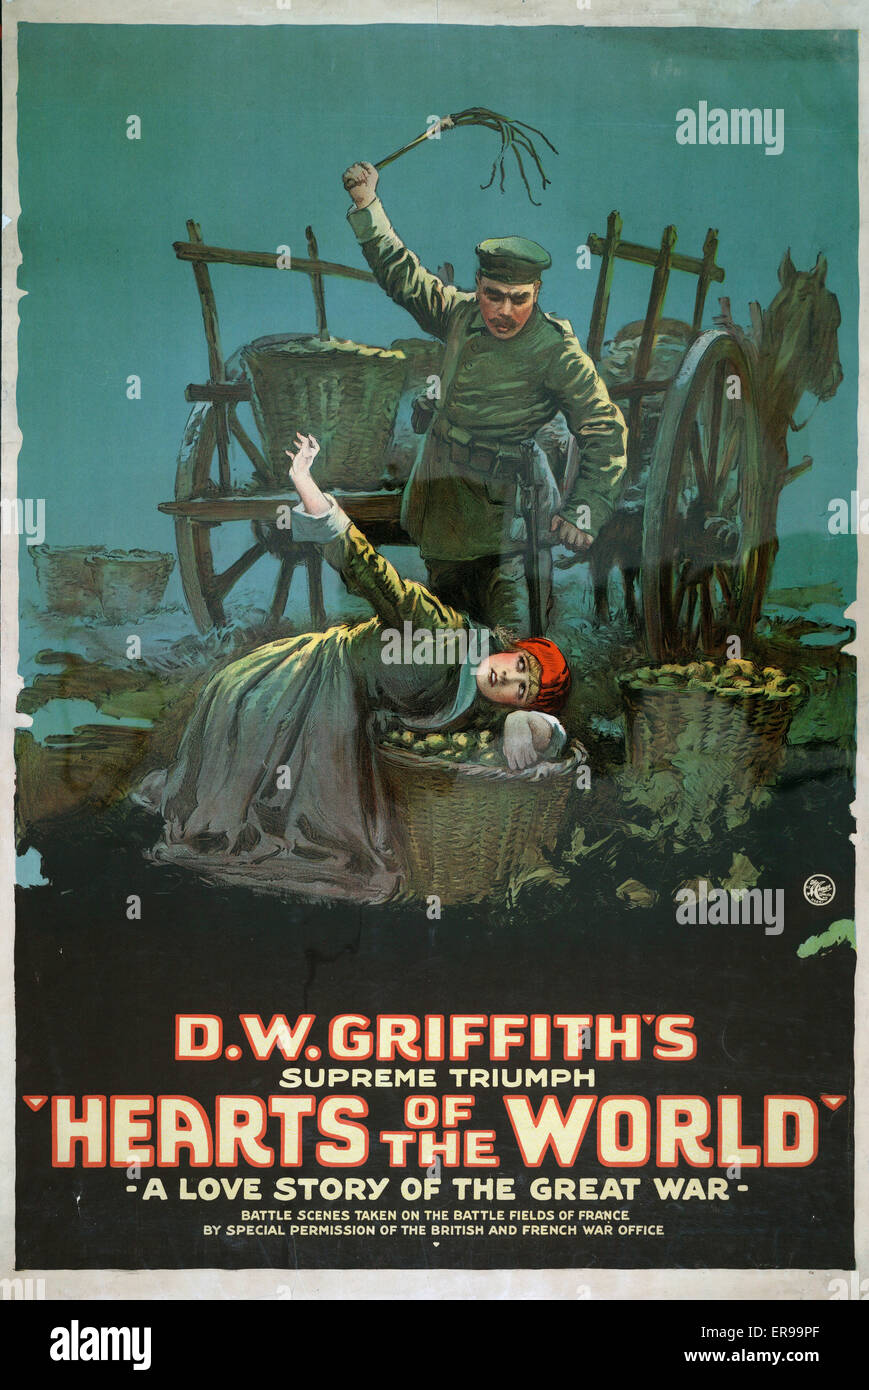 Hearts of the world A love story of the great war. Motion picture poster showing soldier holding whip over woman - Stock Image